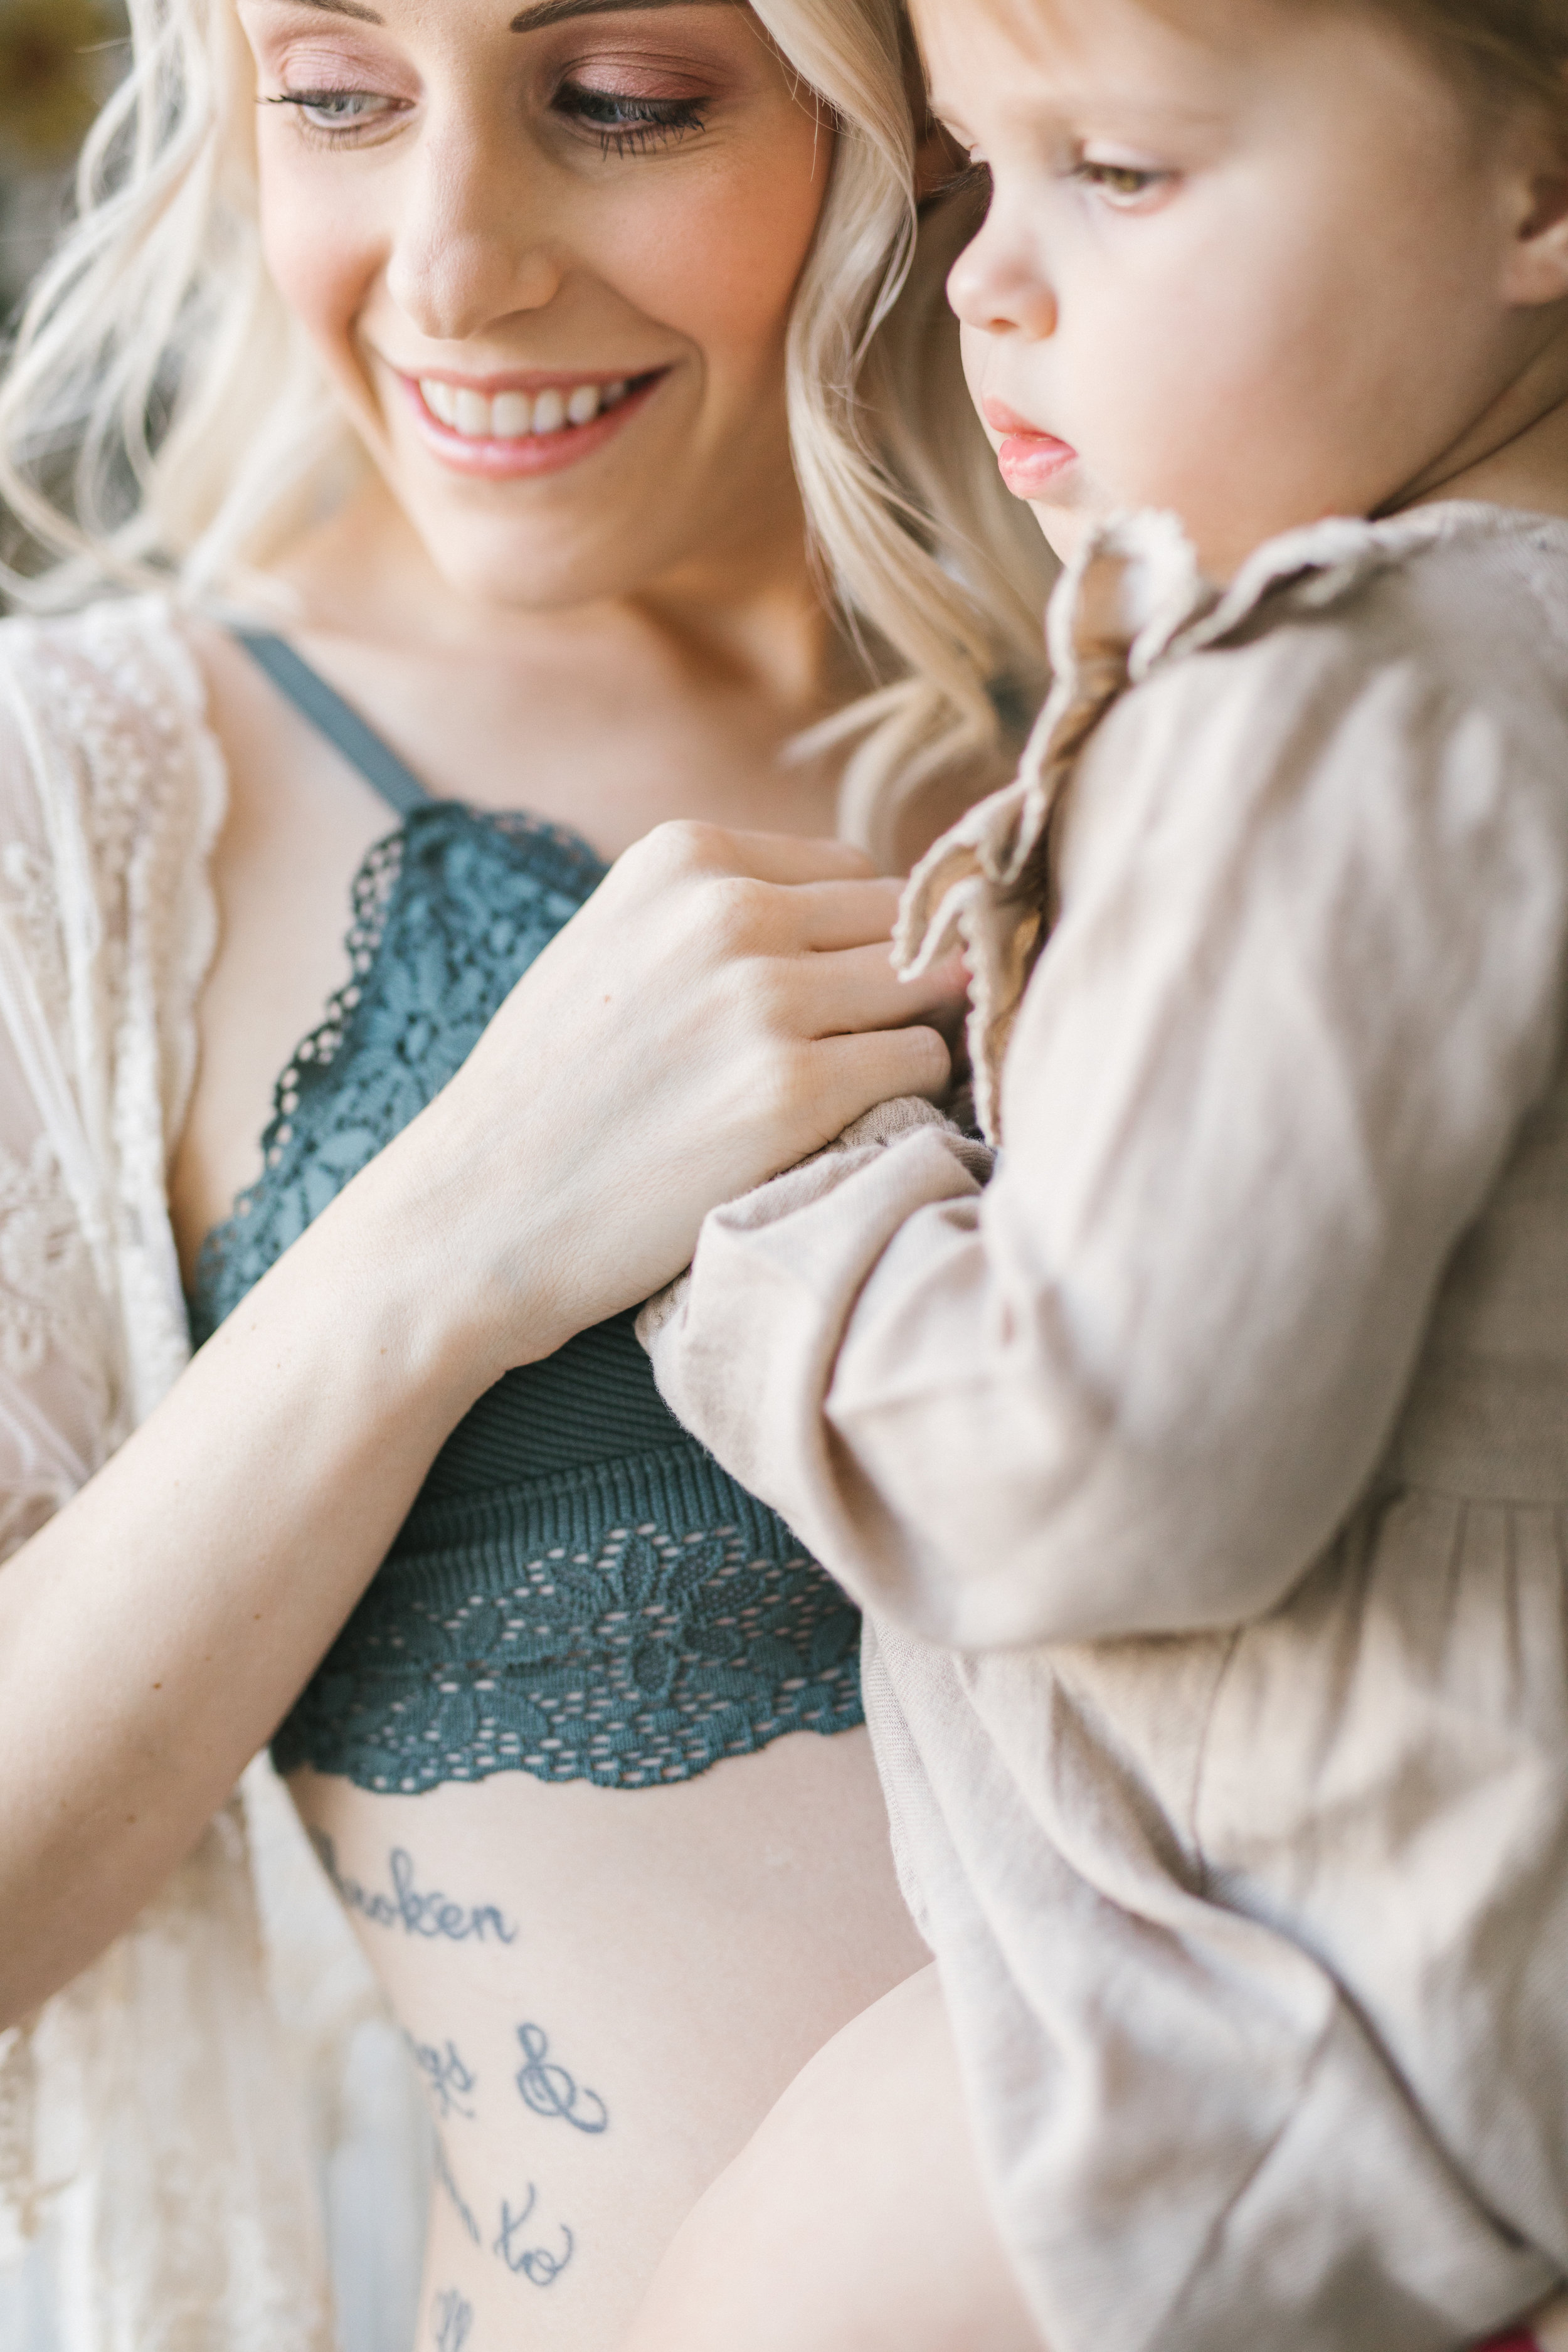 Light Floral Seattle Studio Maternity Session by Chelsea Macor Photography